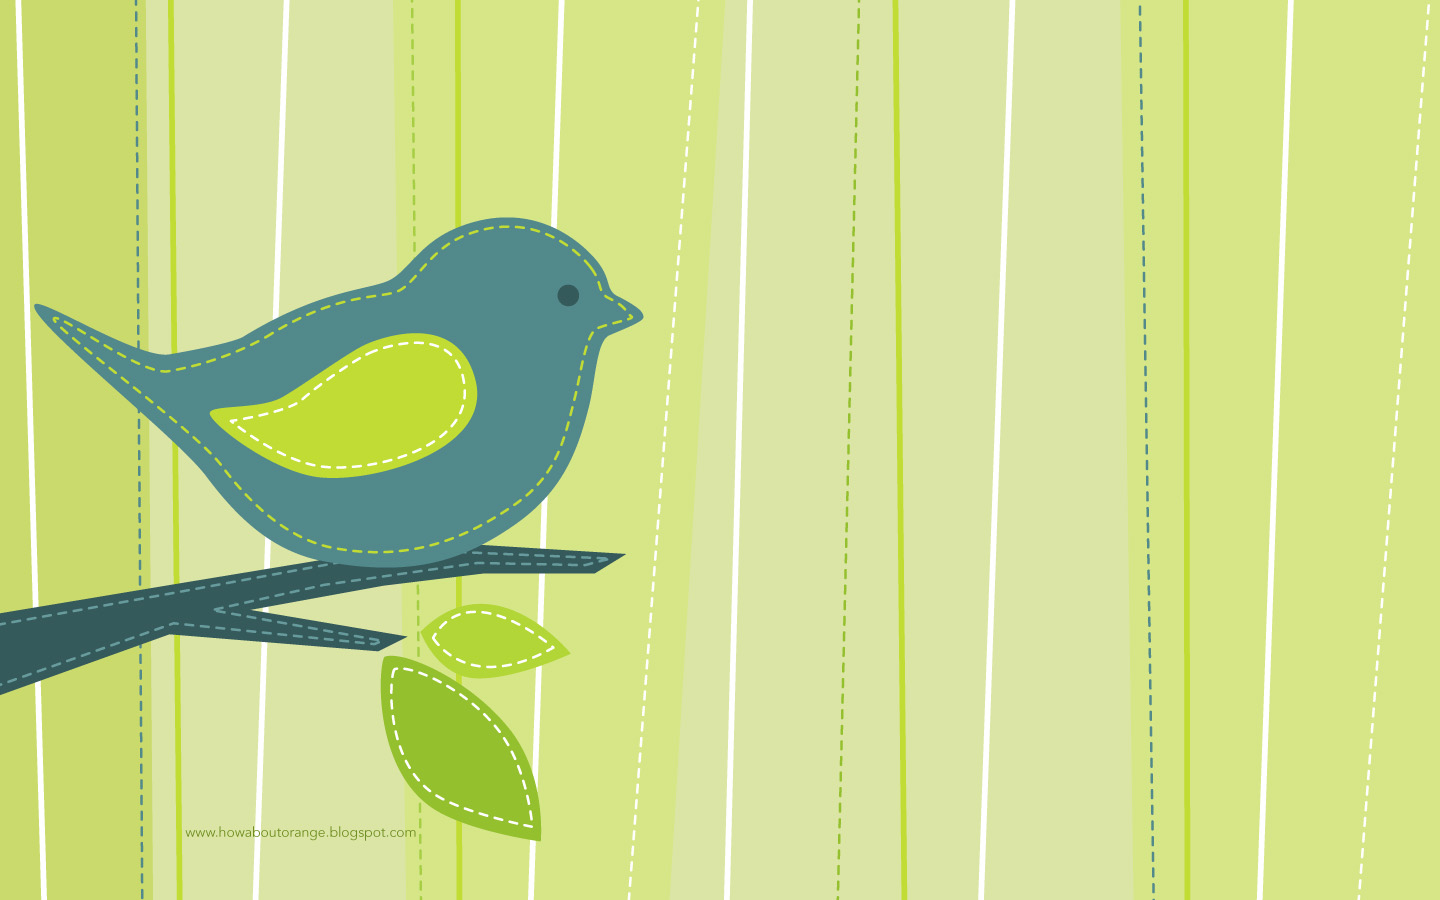 Bird Theme Wallpaper 1440x900